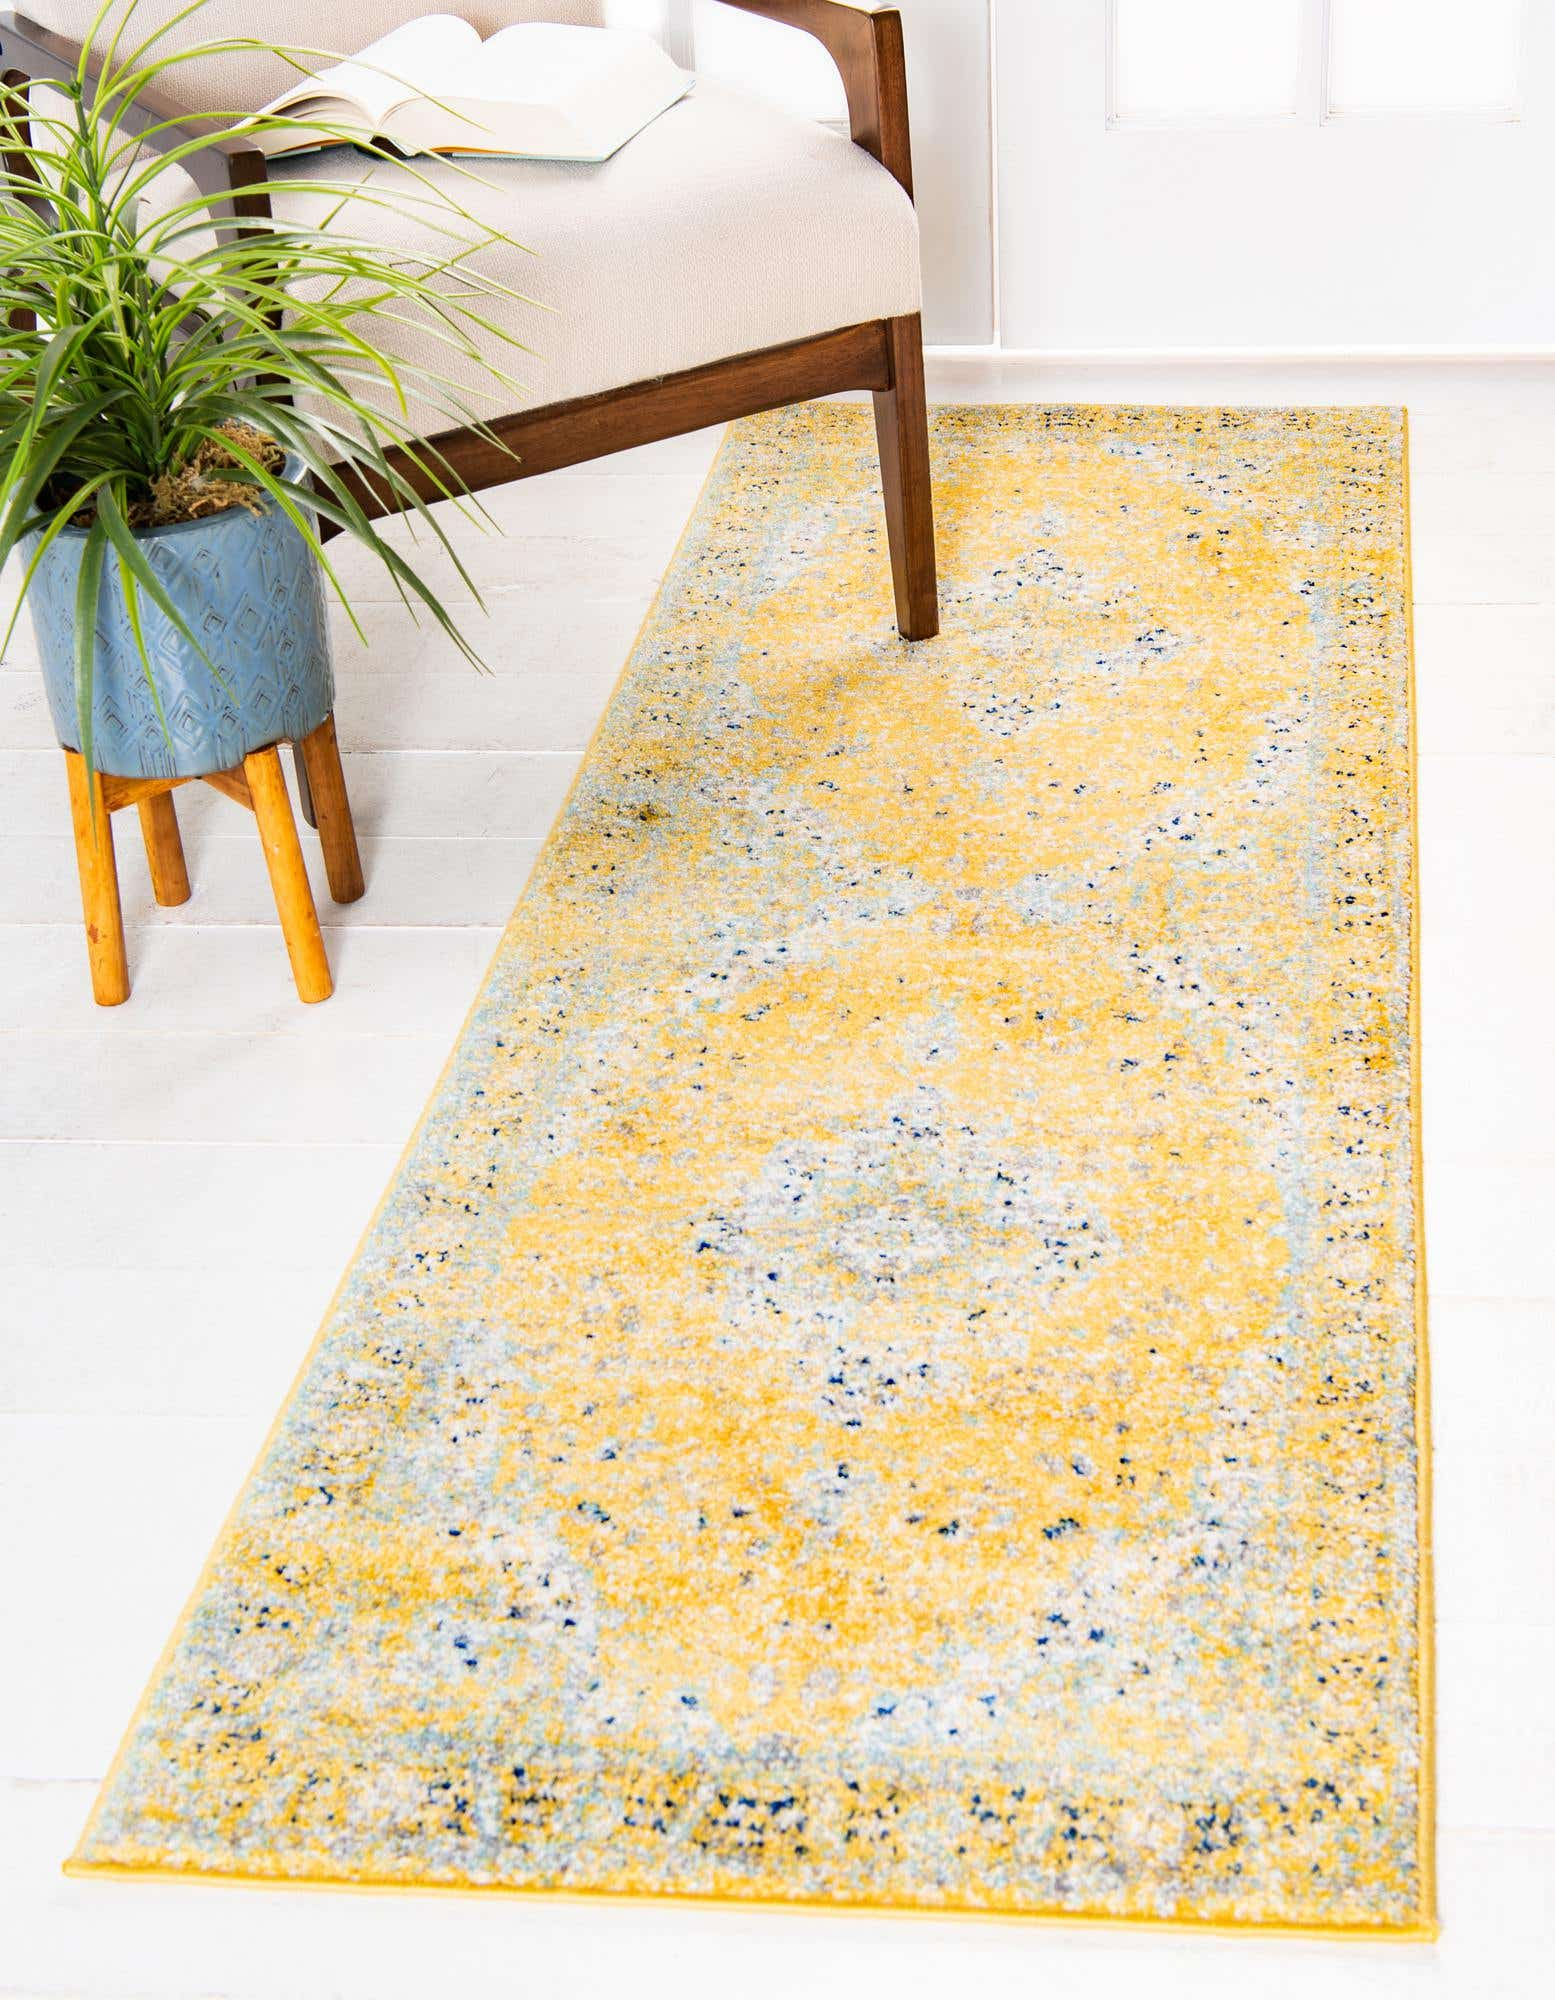 11 Entryway Rug Ideas That Will Inspire You